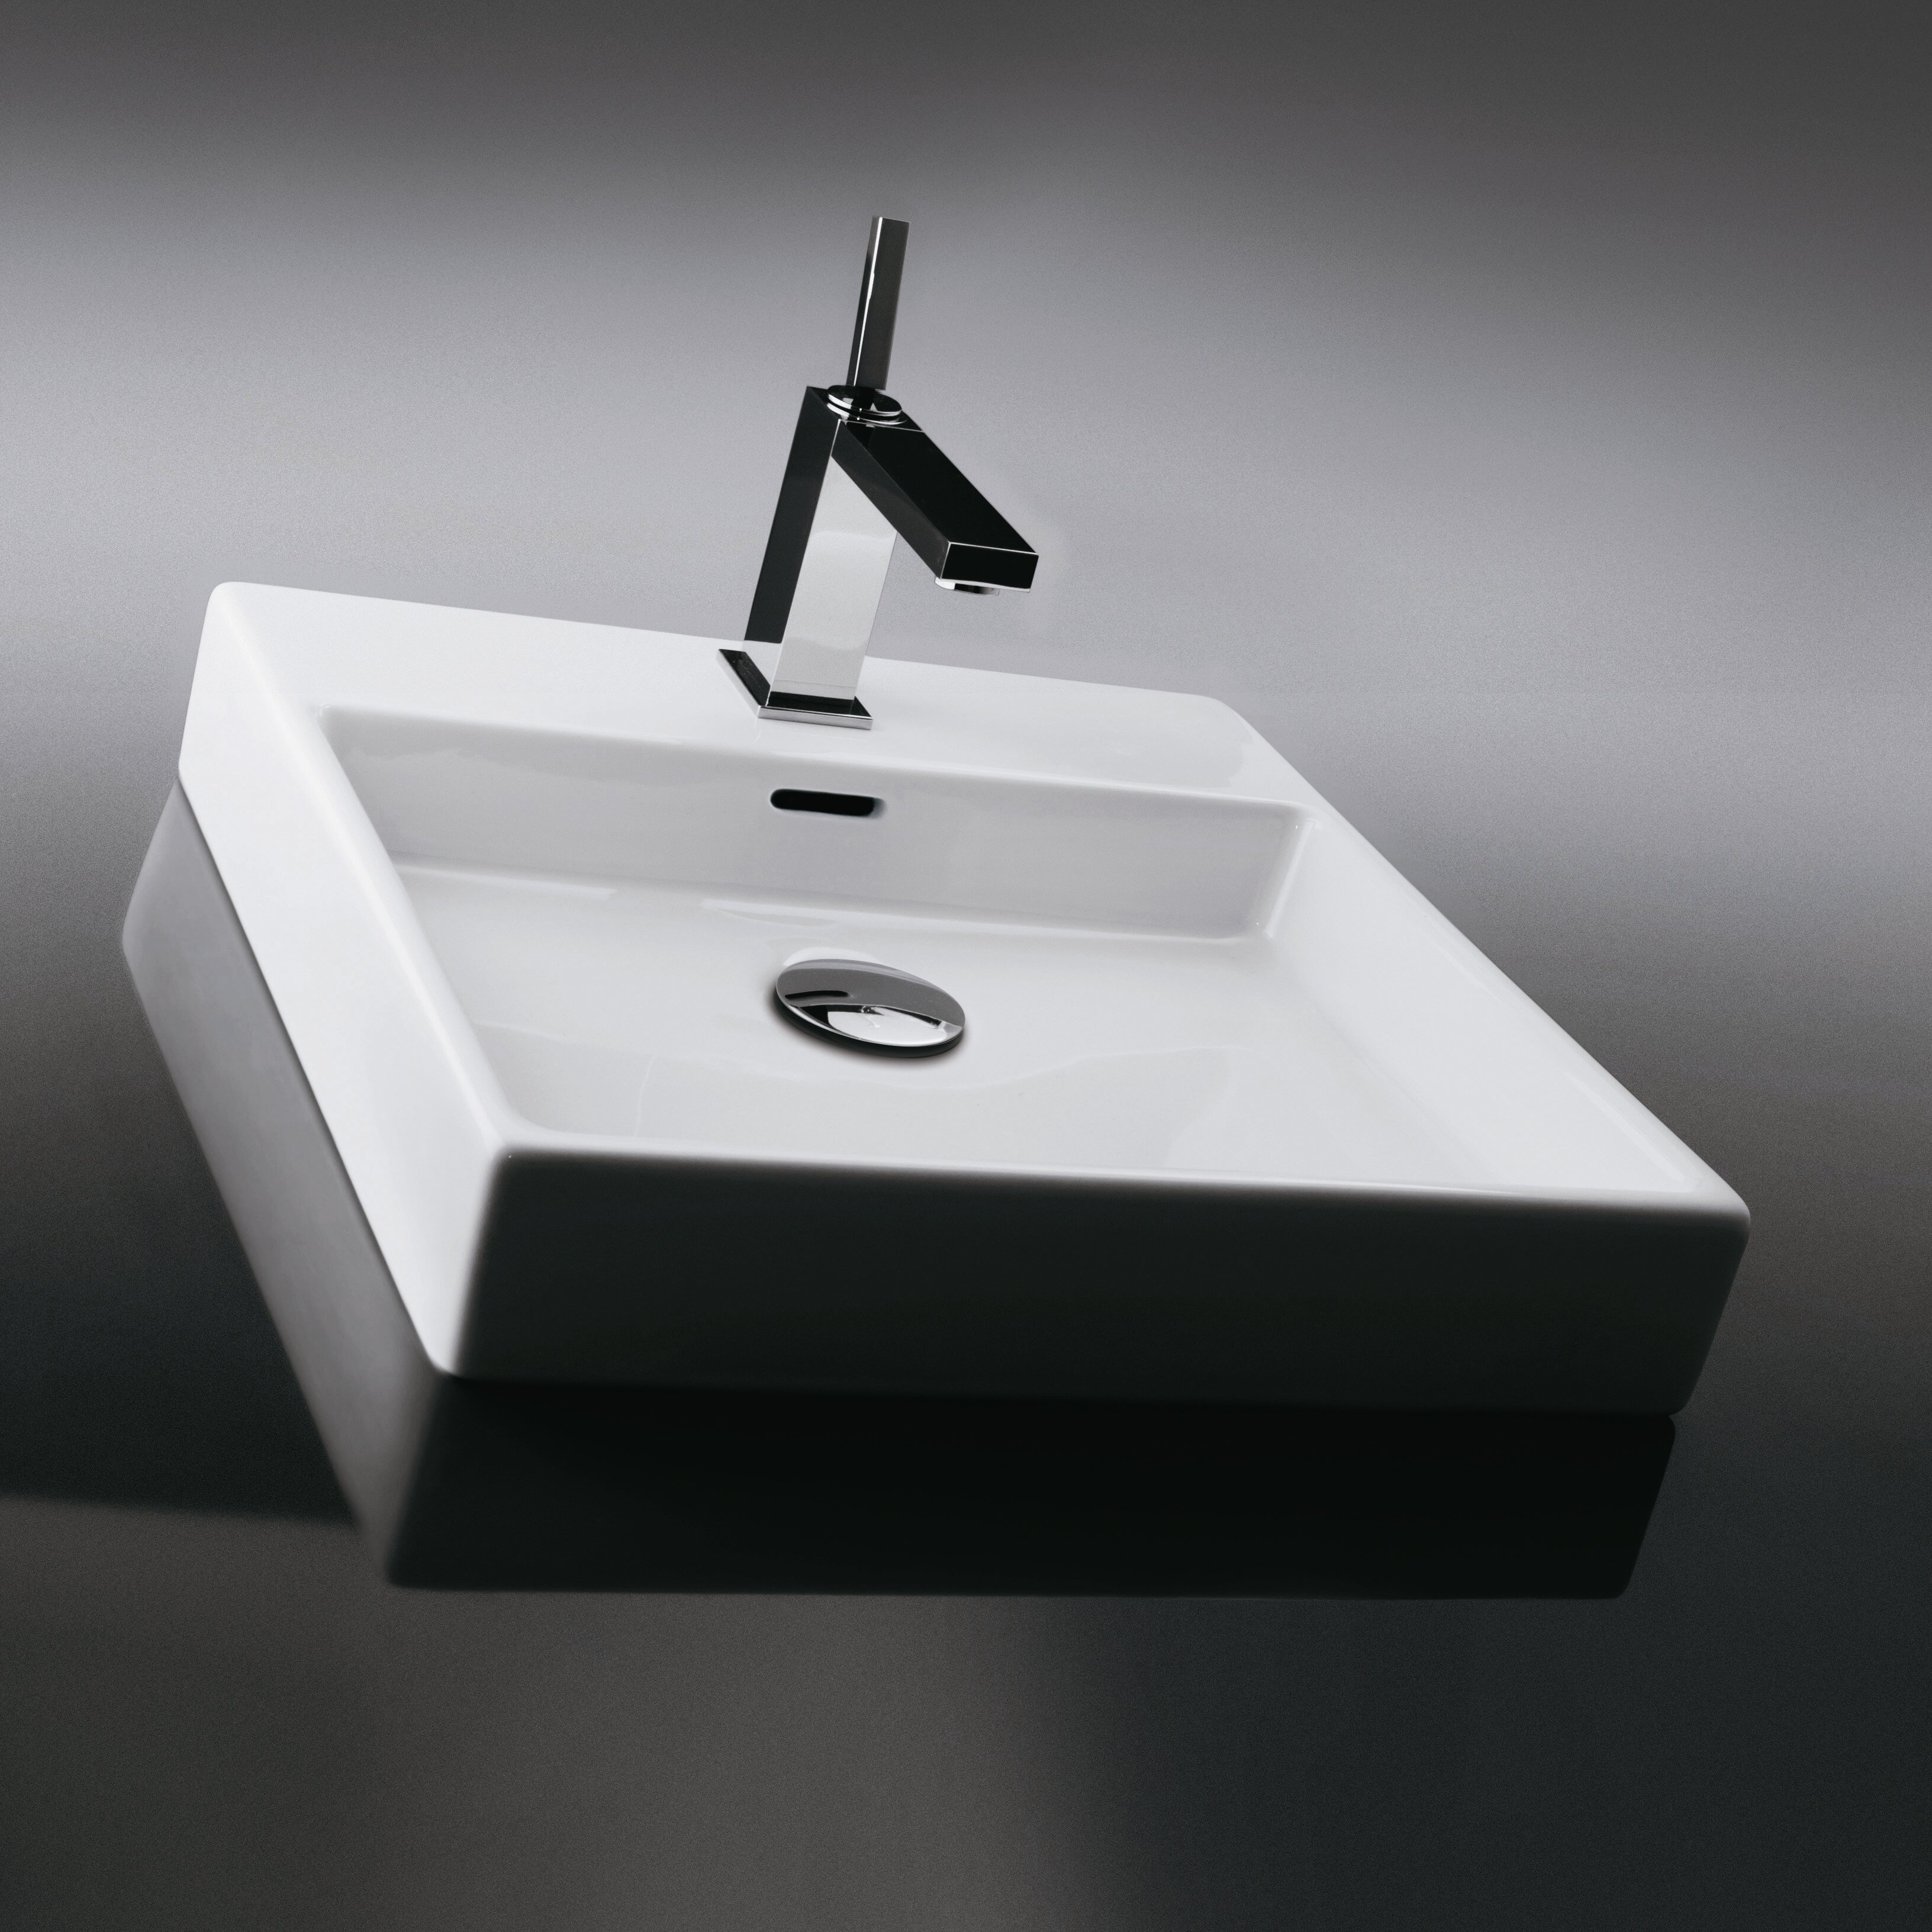 Sink Attached To Wall : ... Ceramica Plain Wall Mounted / Vessel Bathroom Sink & Reviews Wayfair